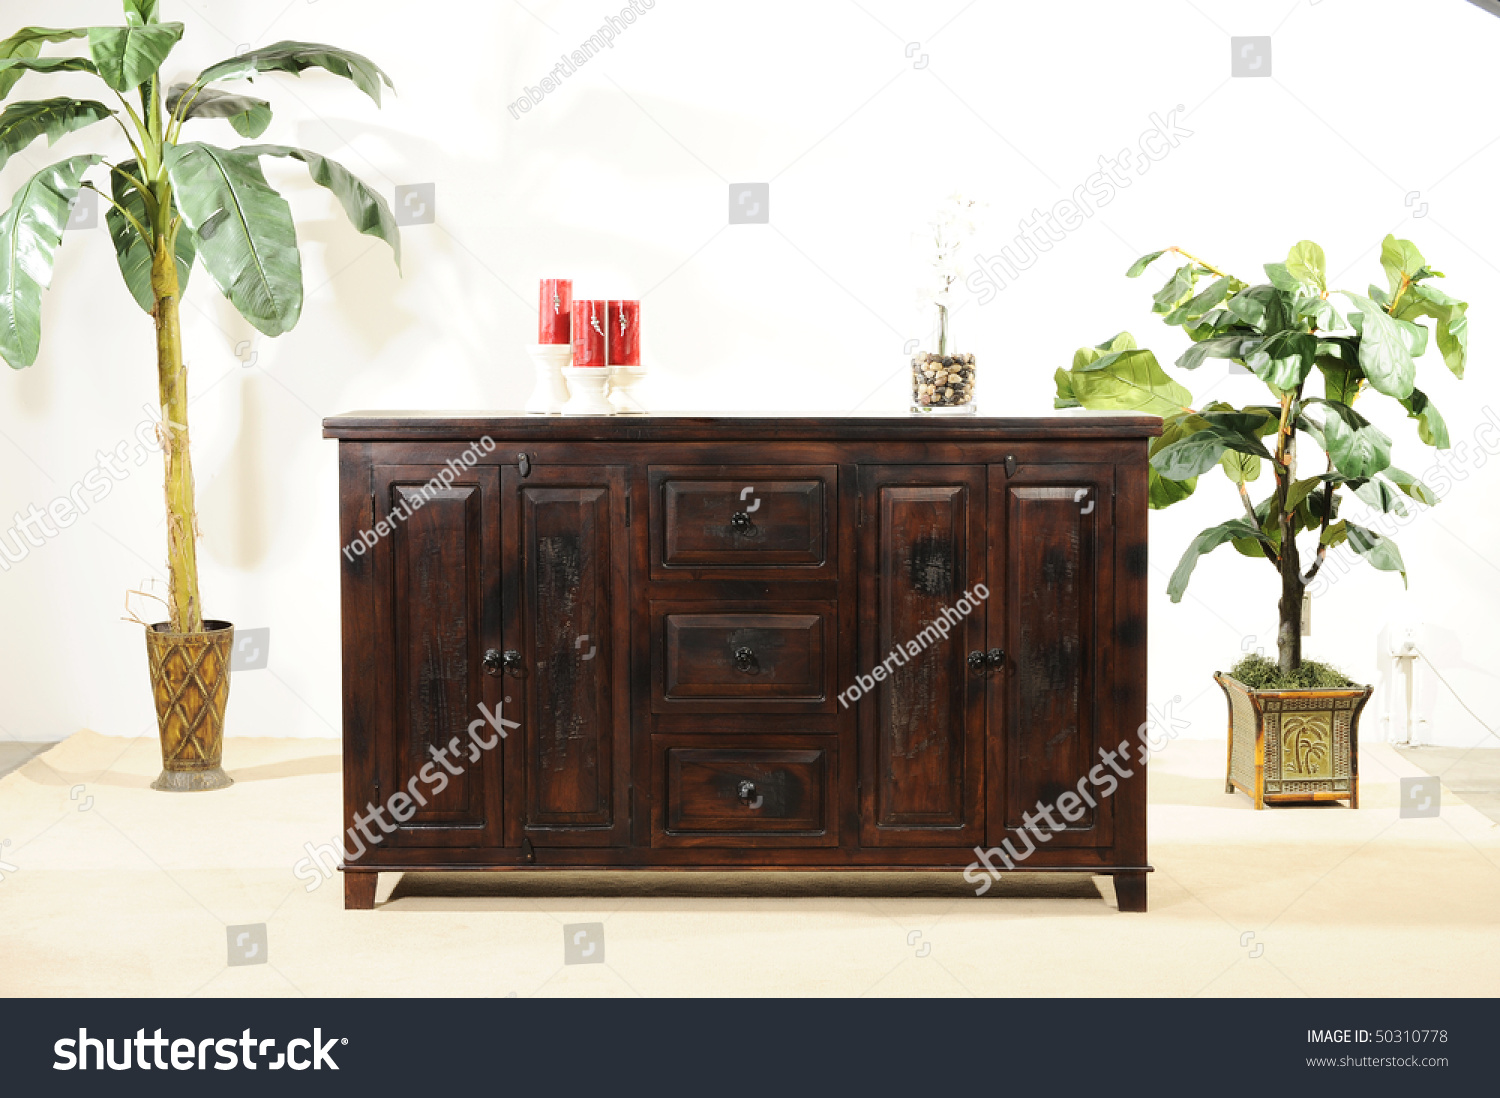 Beautiful Hard Wood Furniture Stock Photo 50310778 Shutterstock